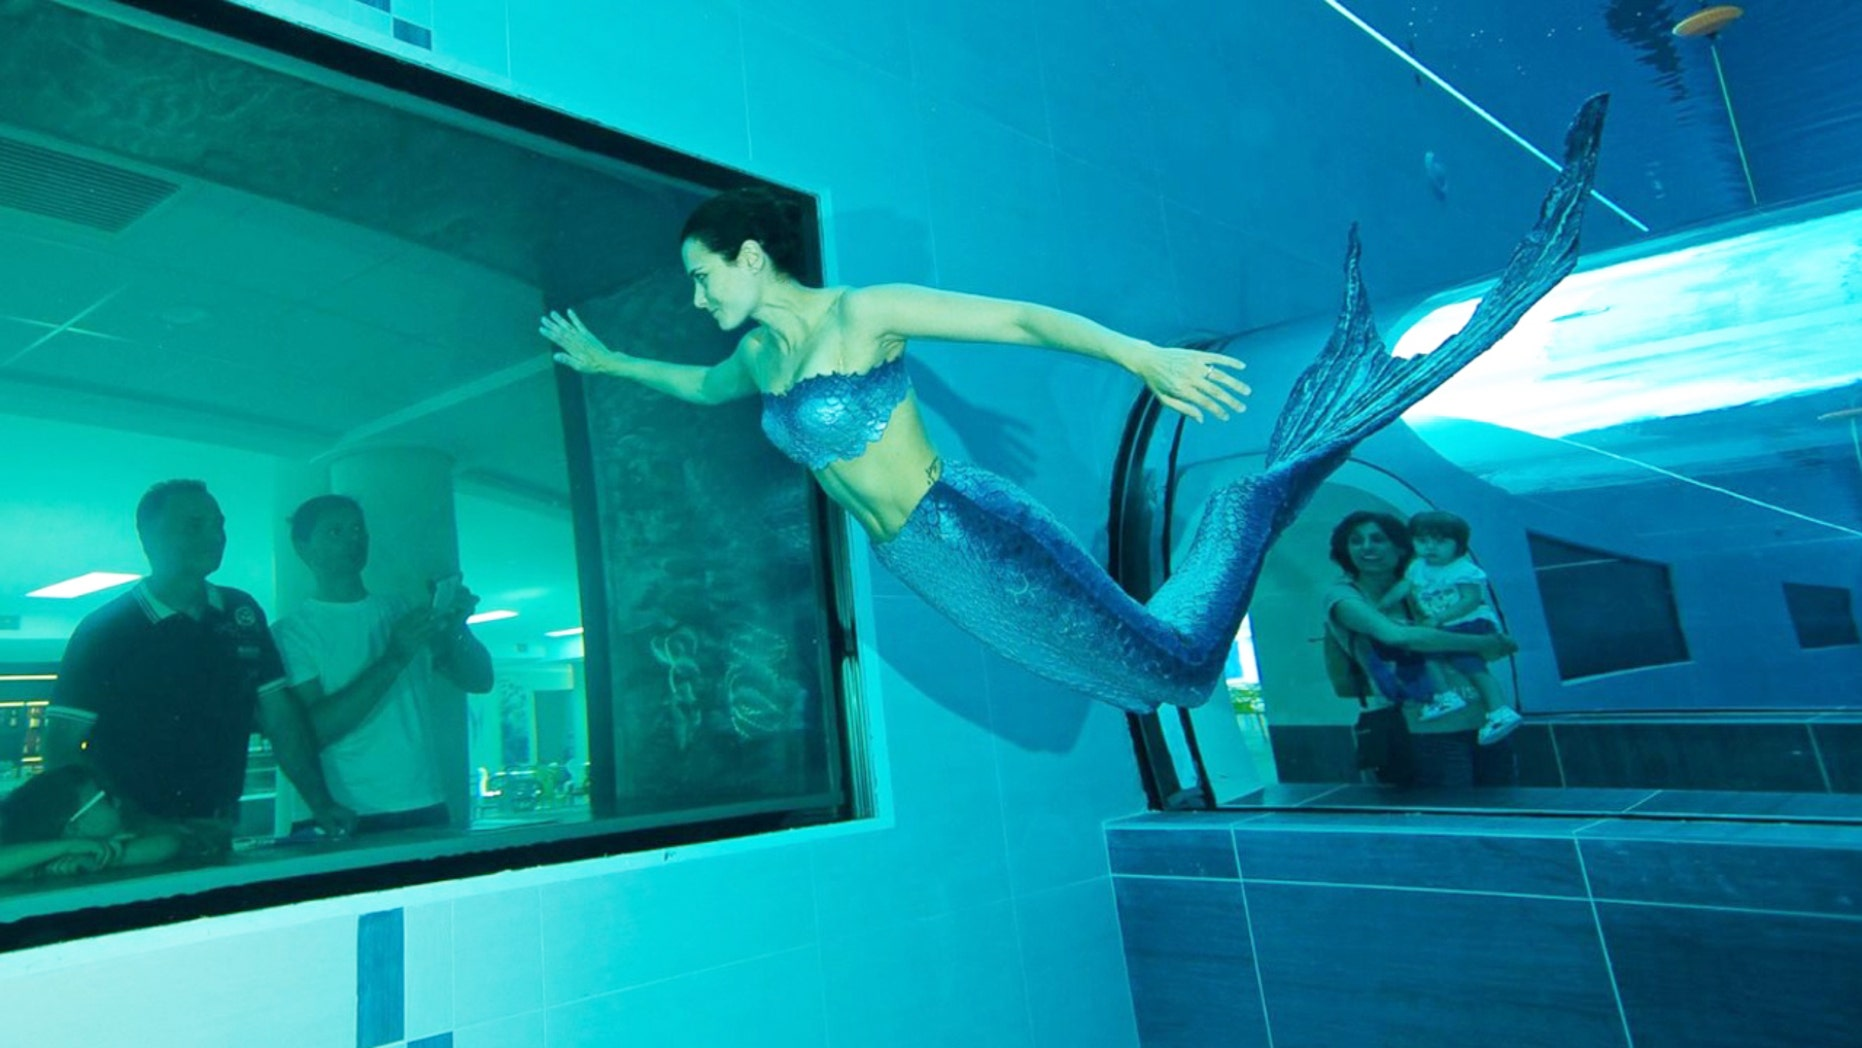 Mermaids frequent the deepest waters at this Italian aquatic park.